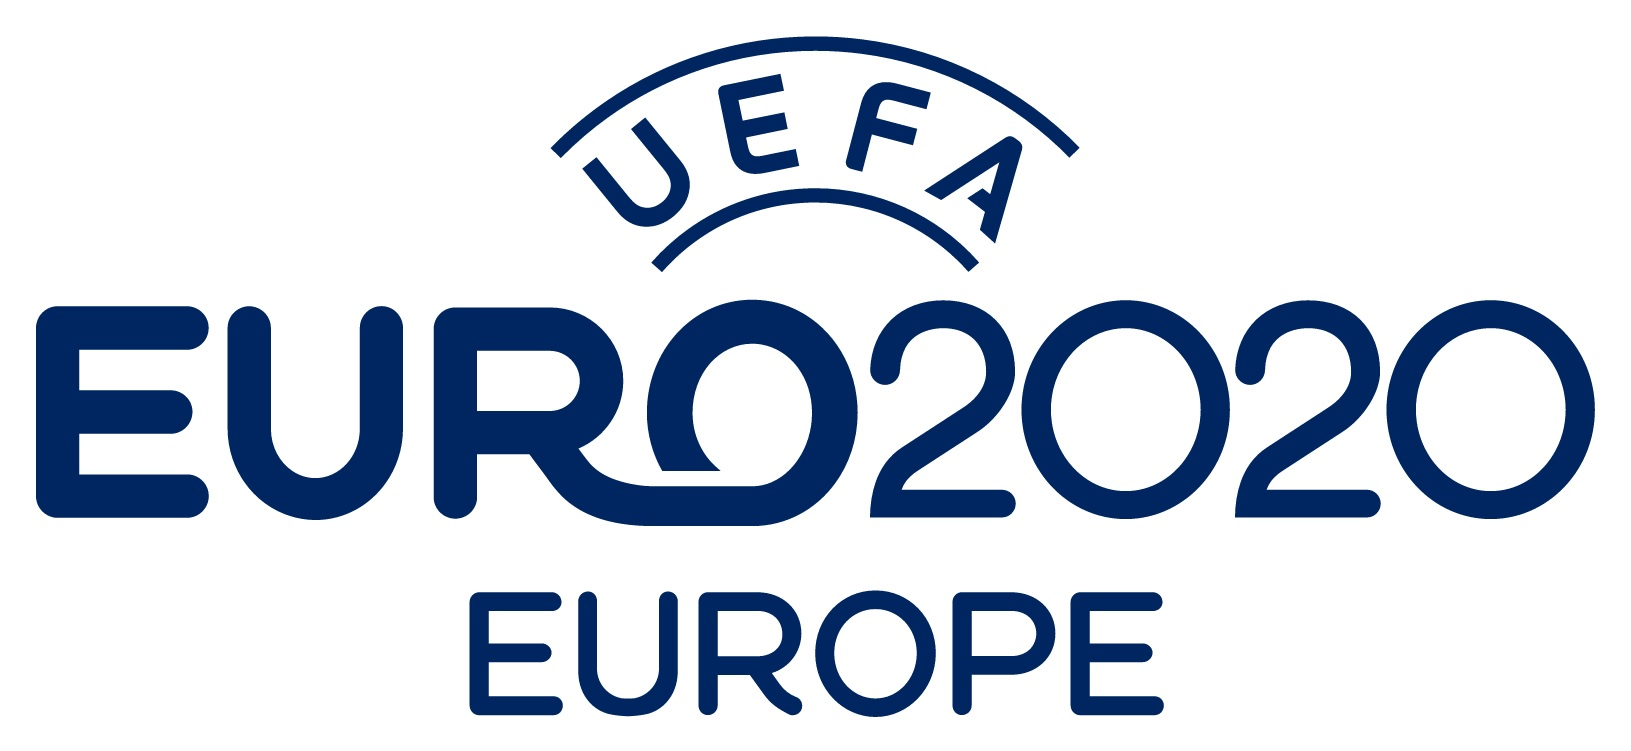 UEFA decided EURO 2020 across Europe with the Final in  : LogointrimaireUEFAEURO2020 from www.sofascore.com size 1631 x 751 jpeg 130kB